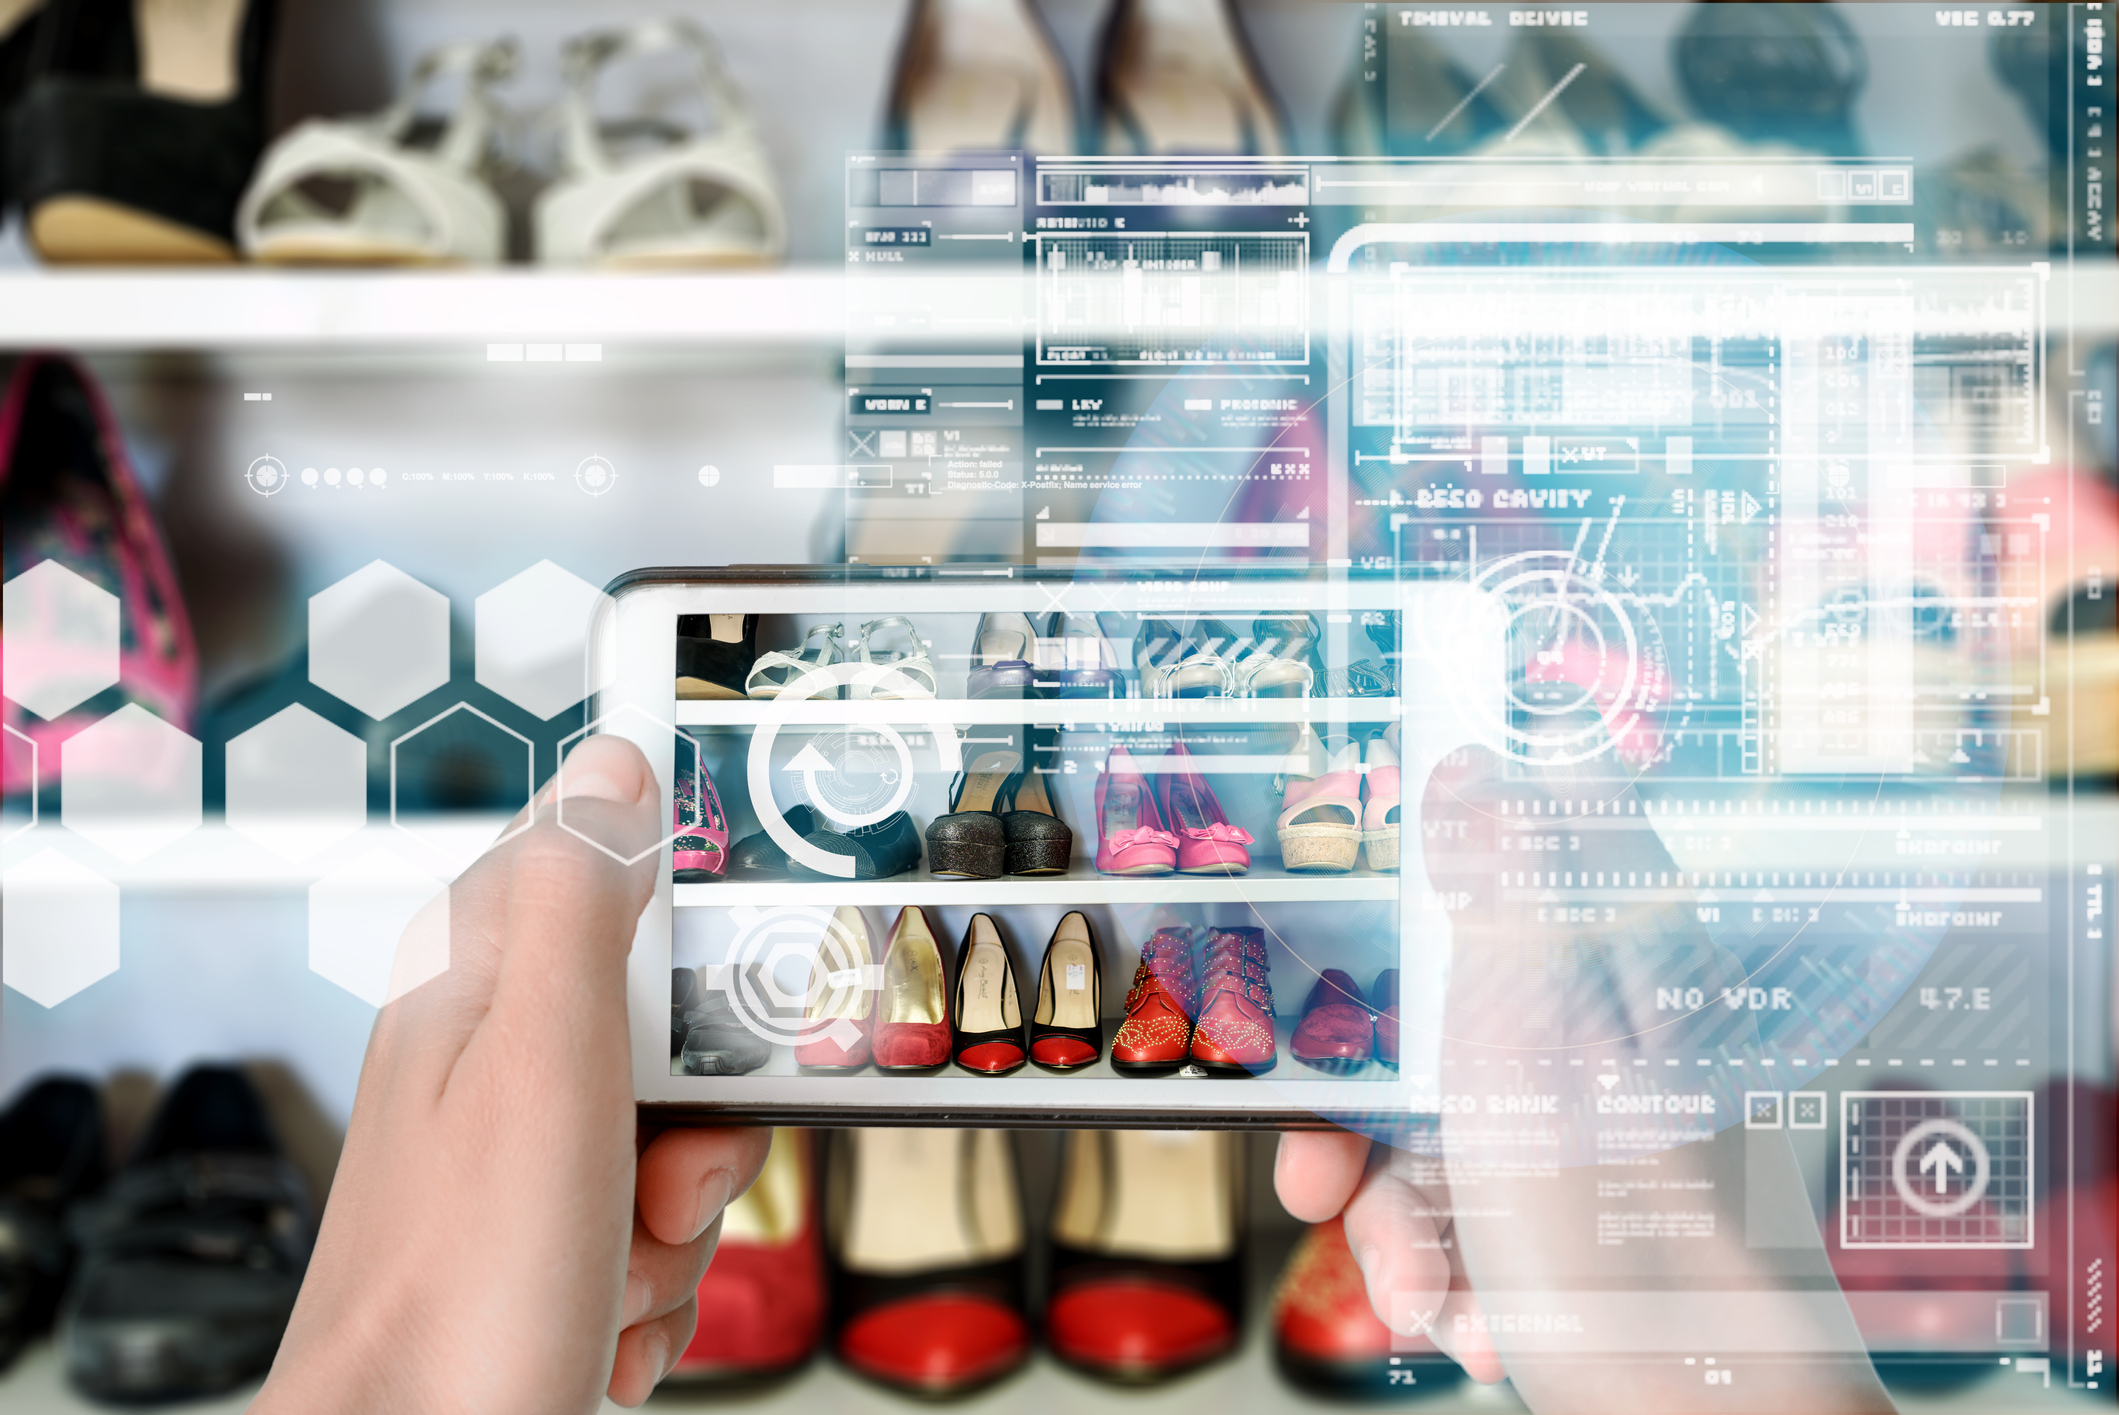 Augmented Reality device using smart technology, mixing virtual and augmentation reality through the application of artificial intelligence and computer AI tech assistance for a personalised shopping experience